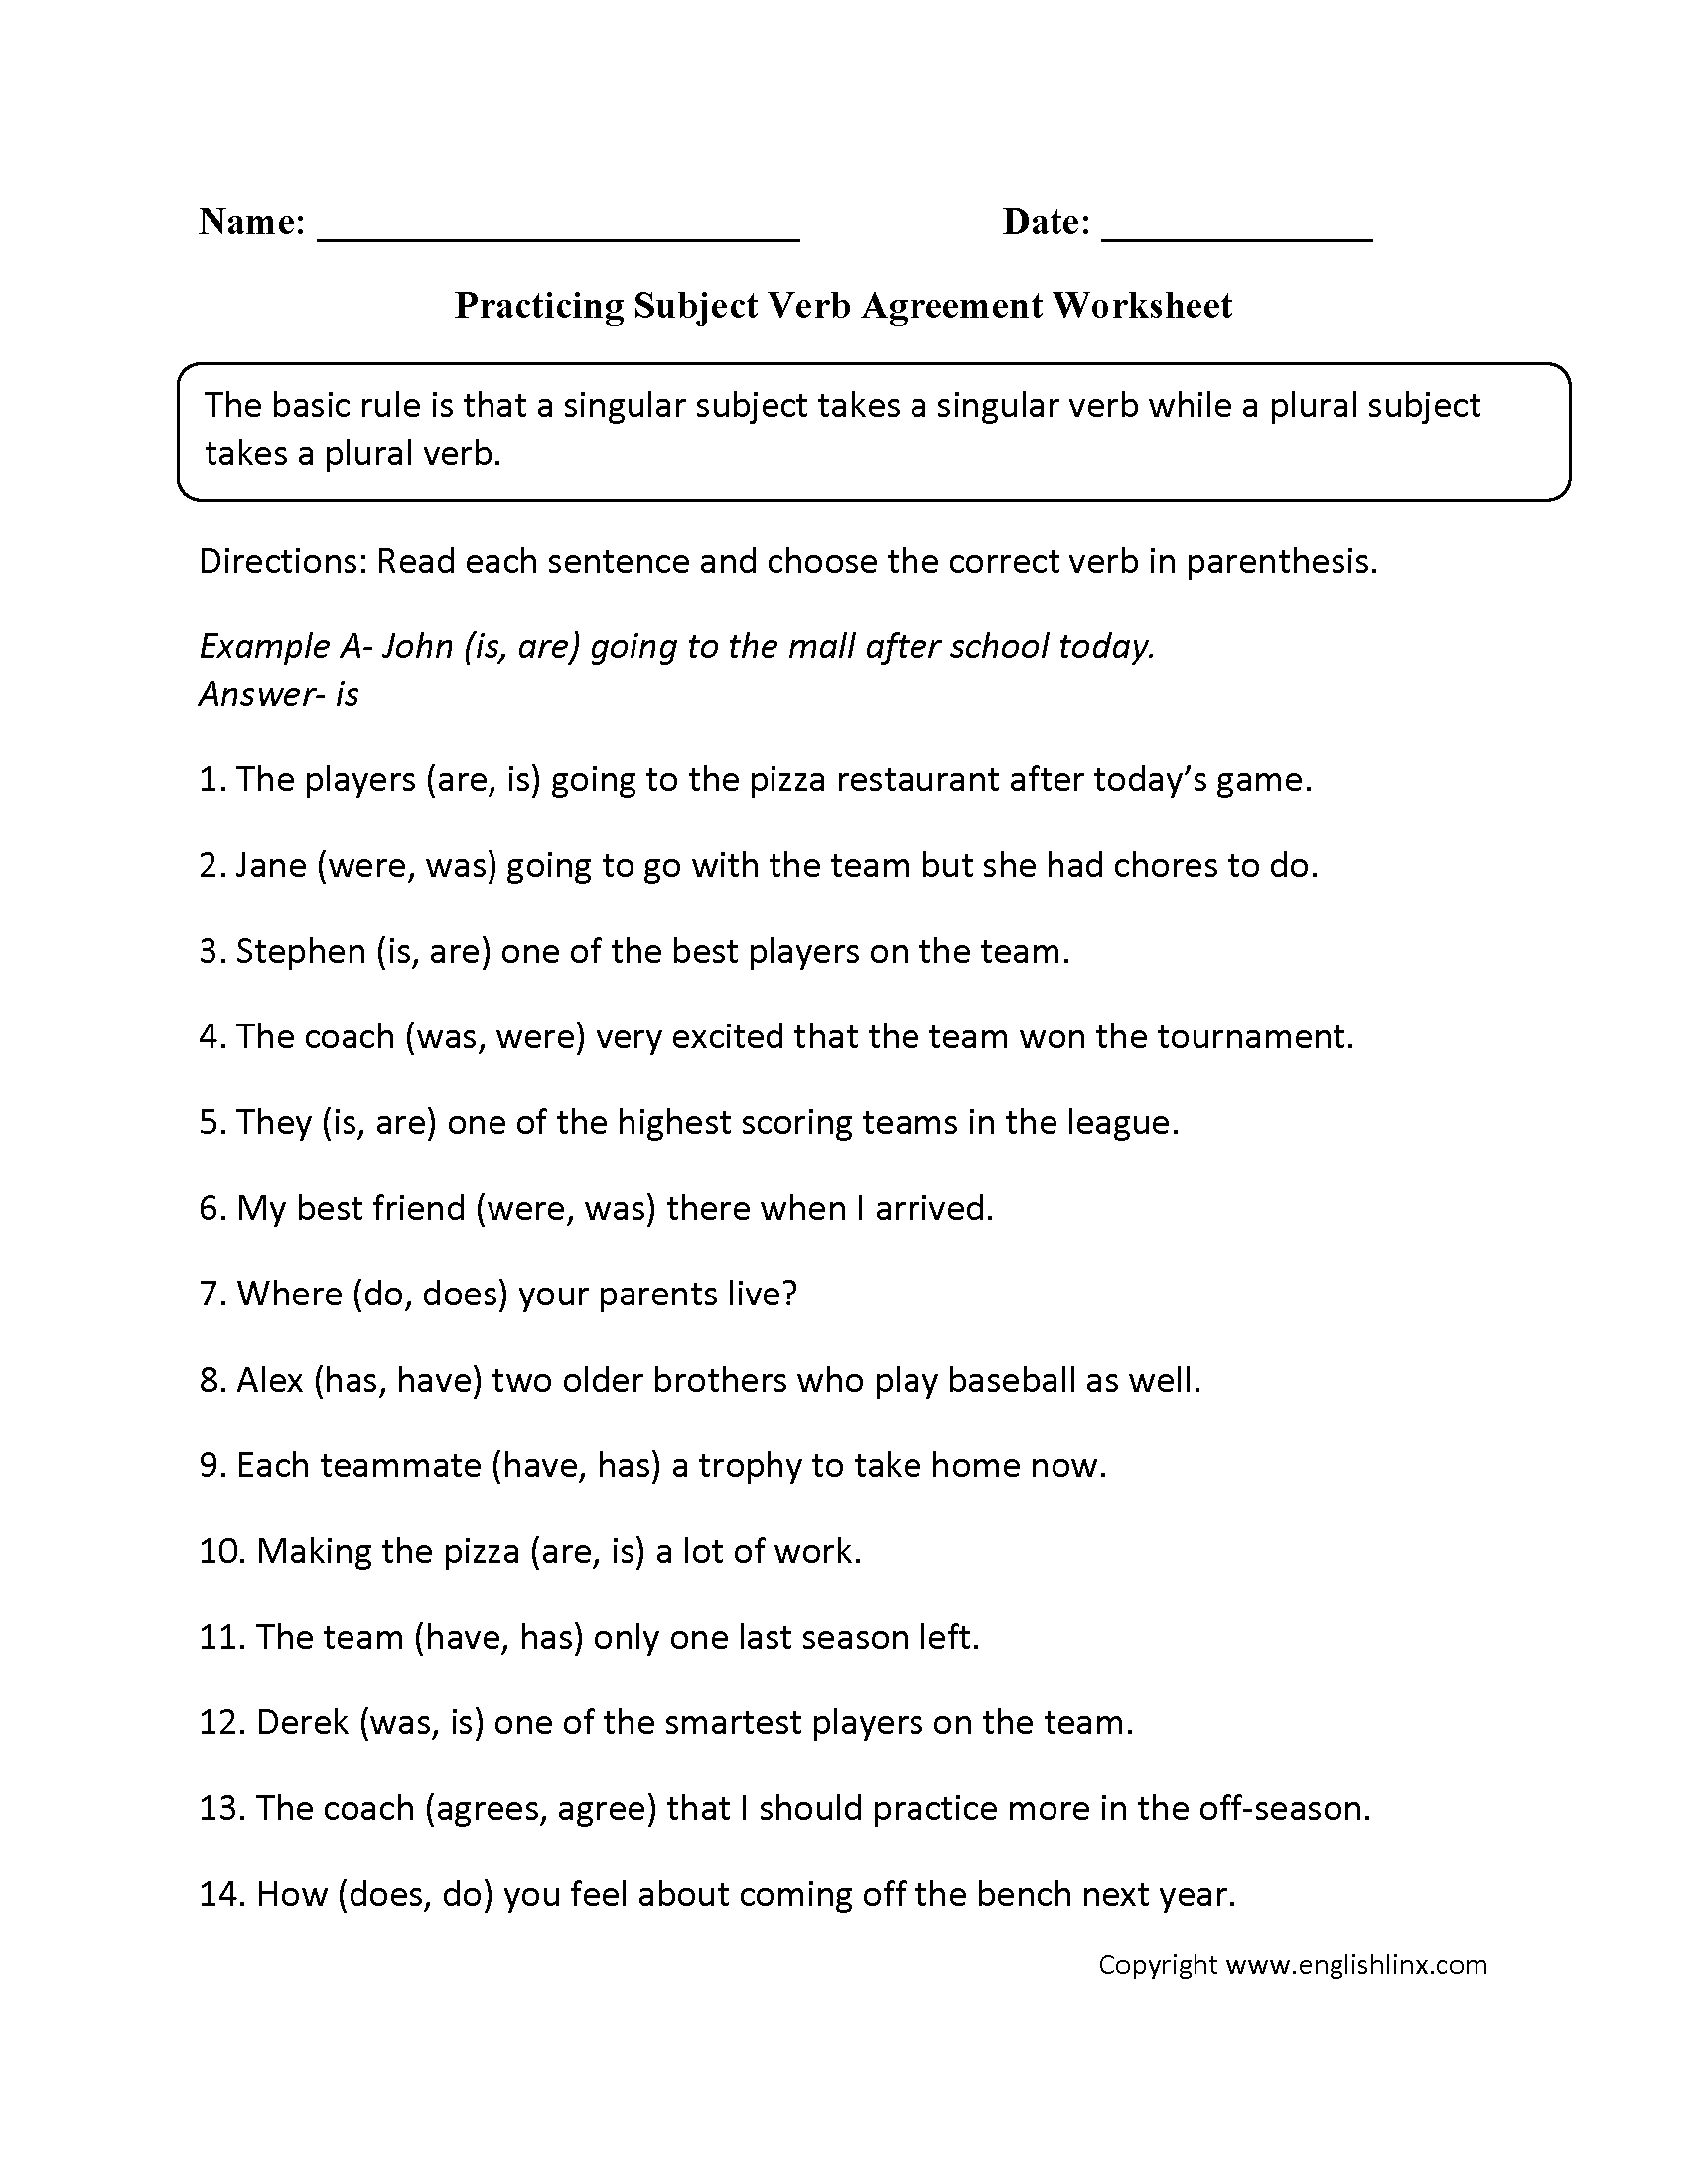 Subject Verb Agreement Worksheets | Englishlinx Board | Pronoun | Free Printable Subject Verb Agreement Worksheets